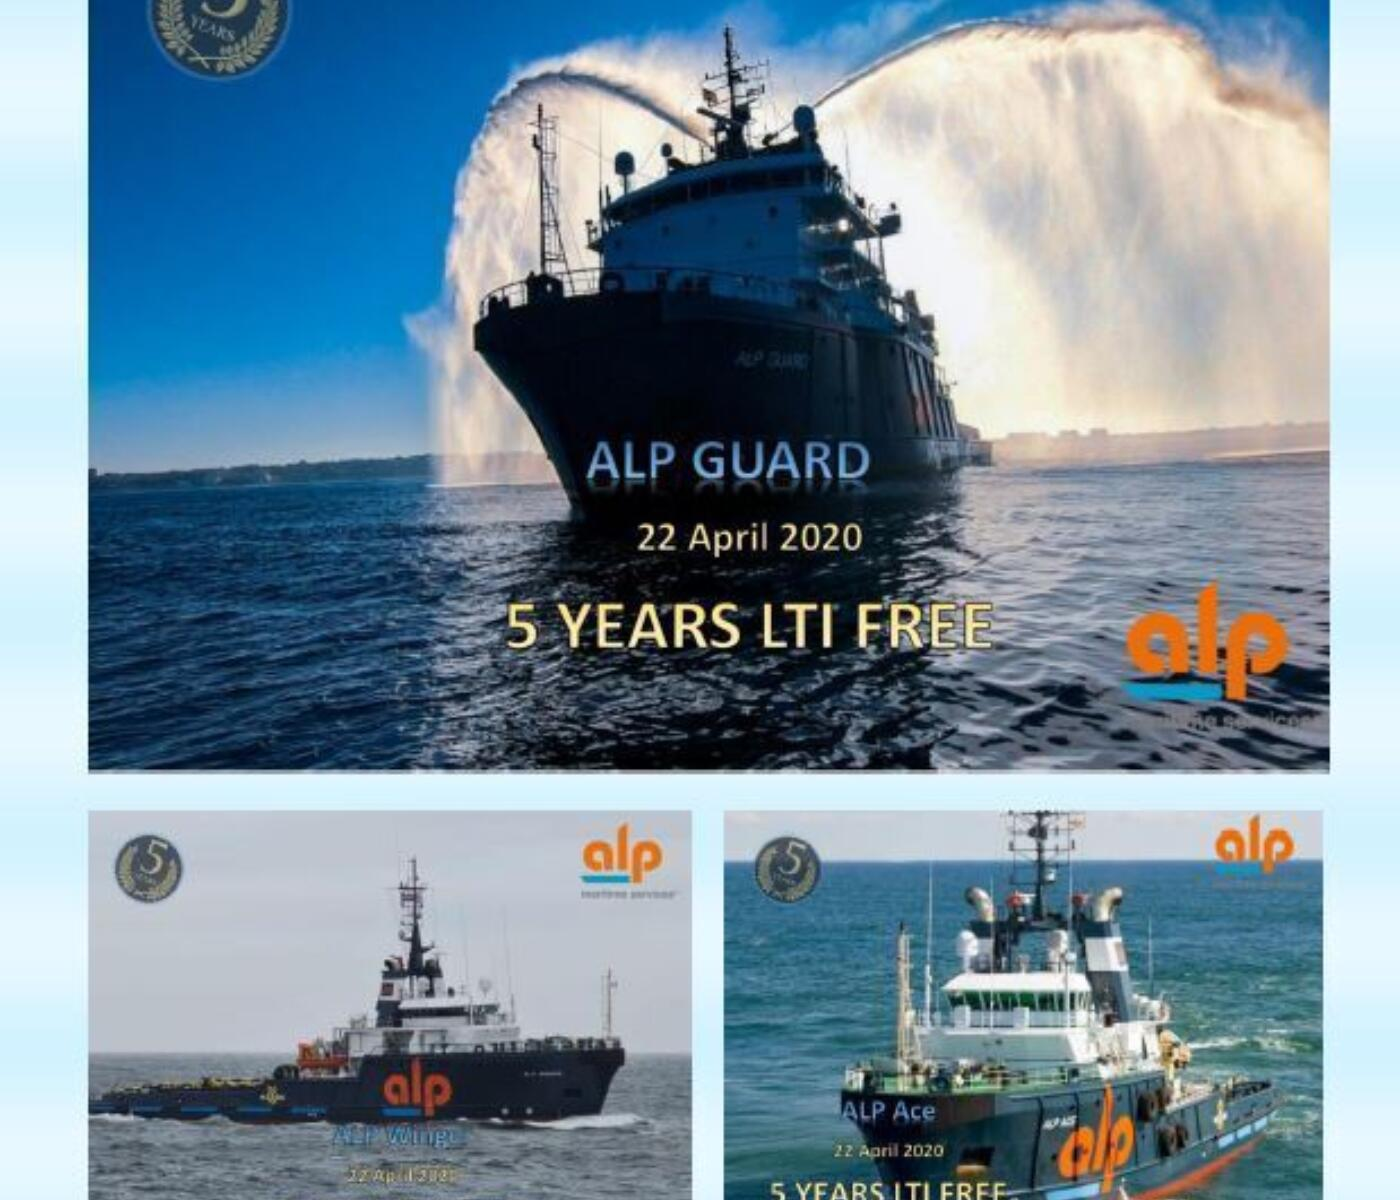 ALP-Guard-Winger-and-Ace-5-years-LTI-free.JPG